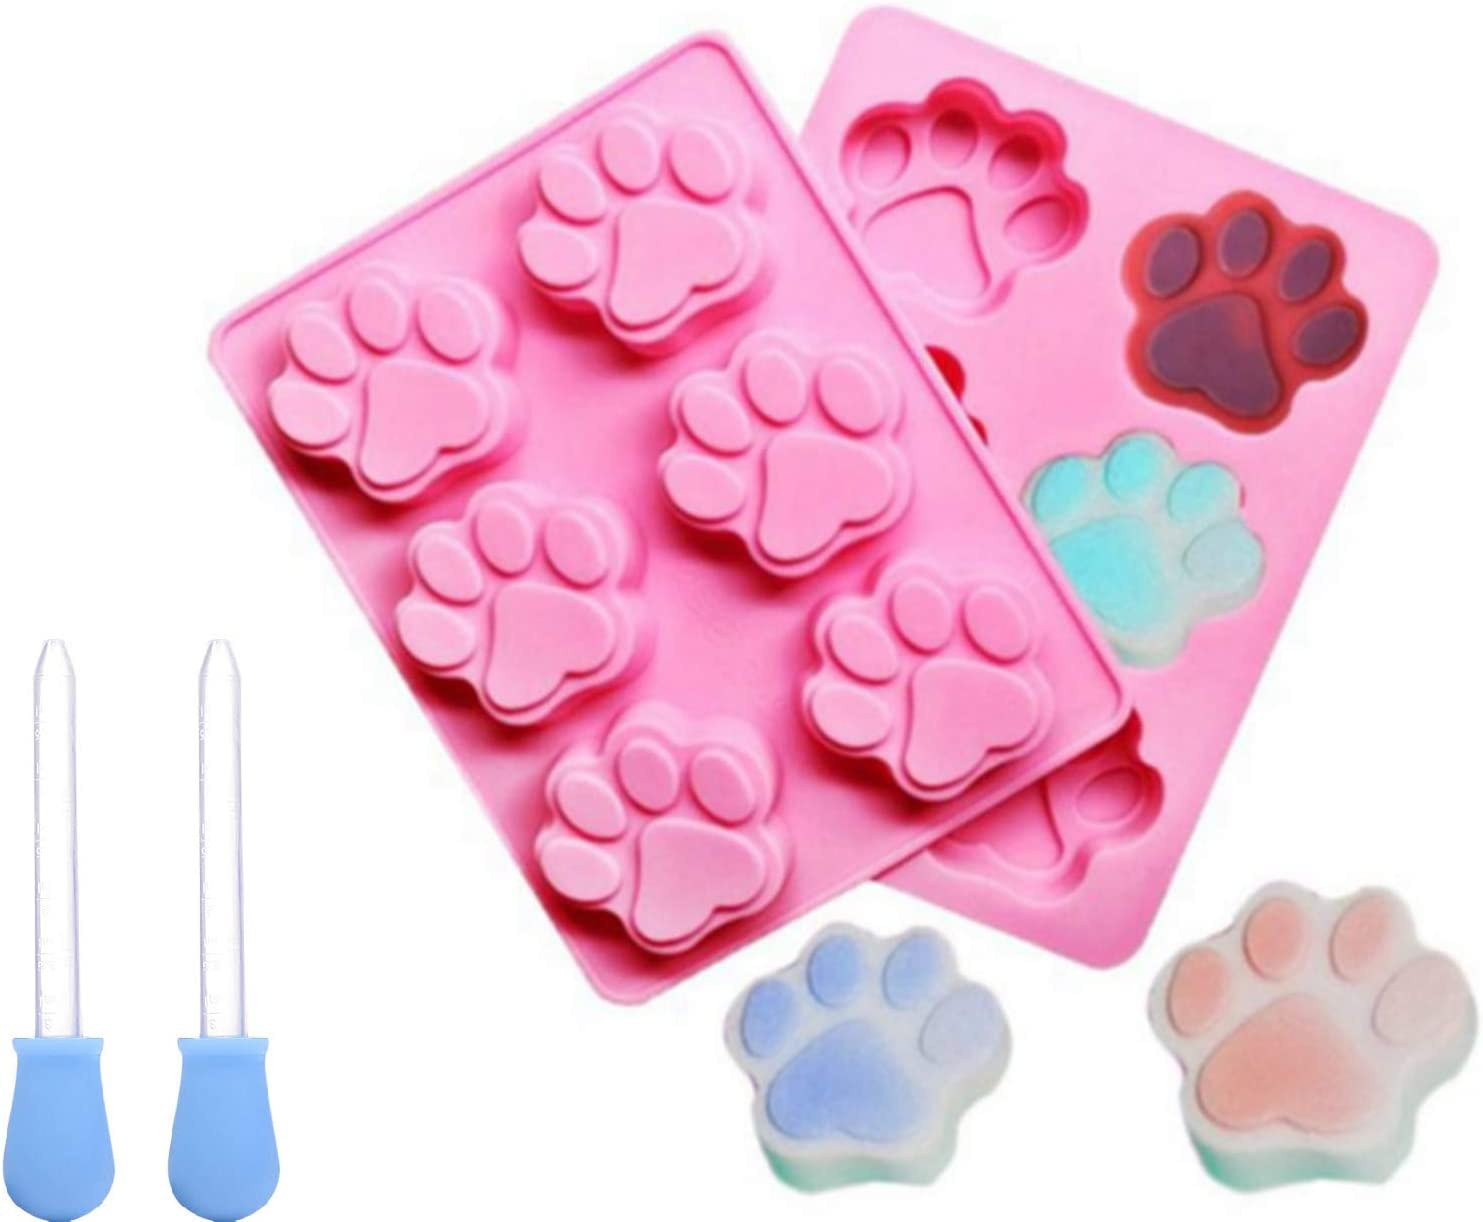 2Pcs Dog Paw Silicone Molds with Dropper, Non-Sticky Food-grade Silicone Molds for Epoxy Resin, Chocolate, Candy, Jelly, Ice Cube and Soap